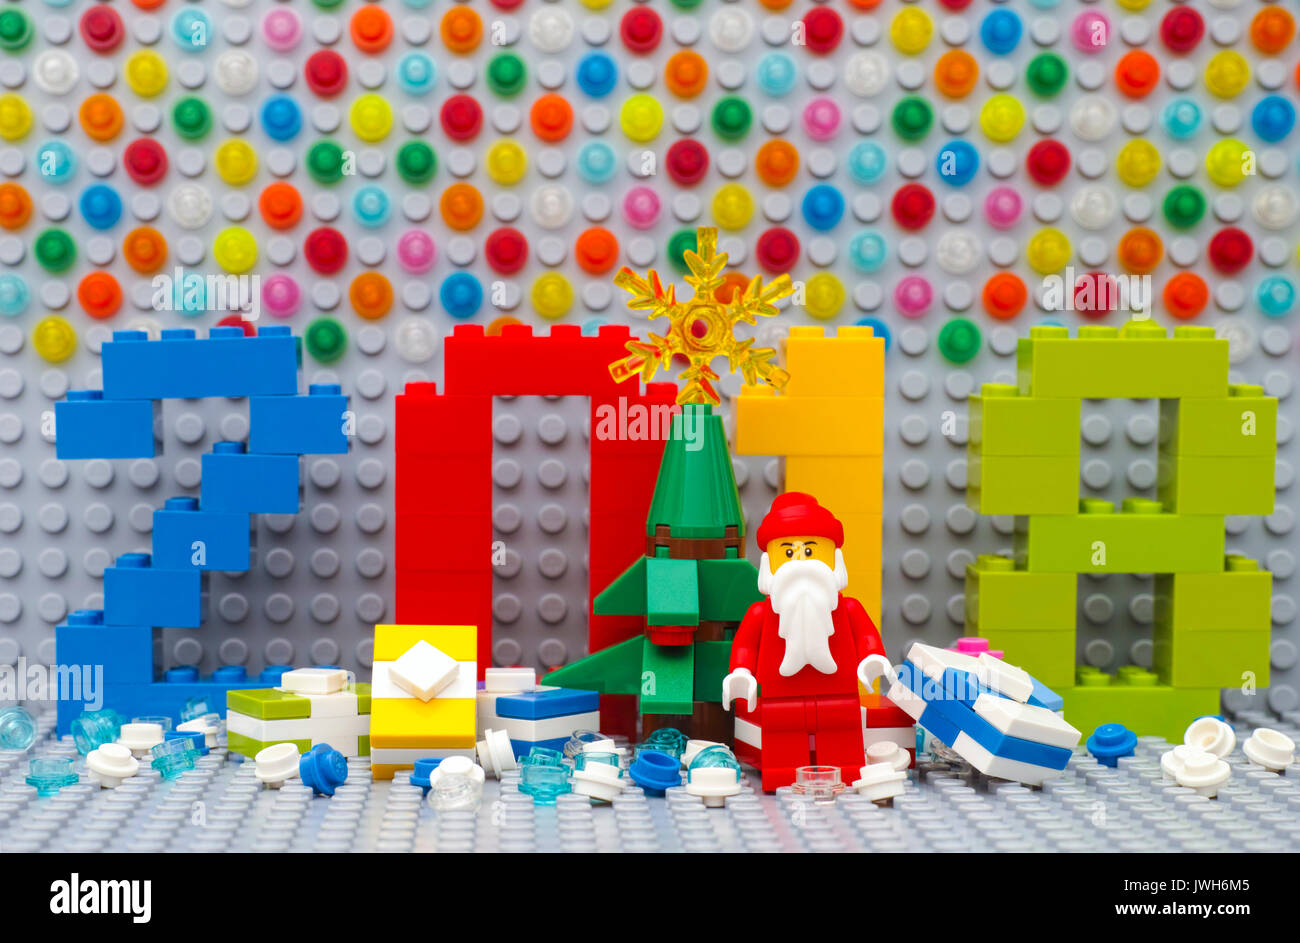 Tambov  Russian Federation   June 15  2017 New year 2018 concept by     Tambov  Russian Federation   June 15  2017 New year 2018 concept by Lego   Numbers 2018  christmas tree  Santa Clause and presents on Lego gray basepla